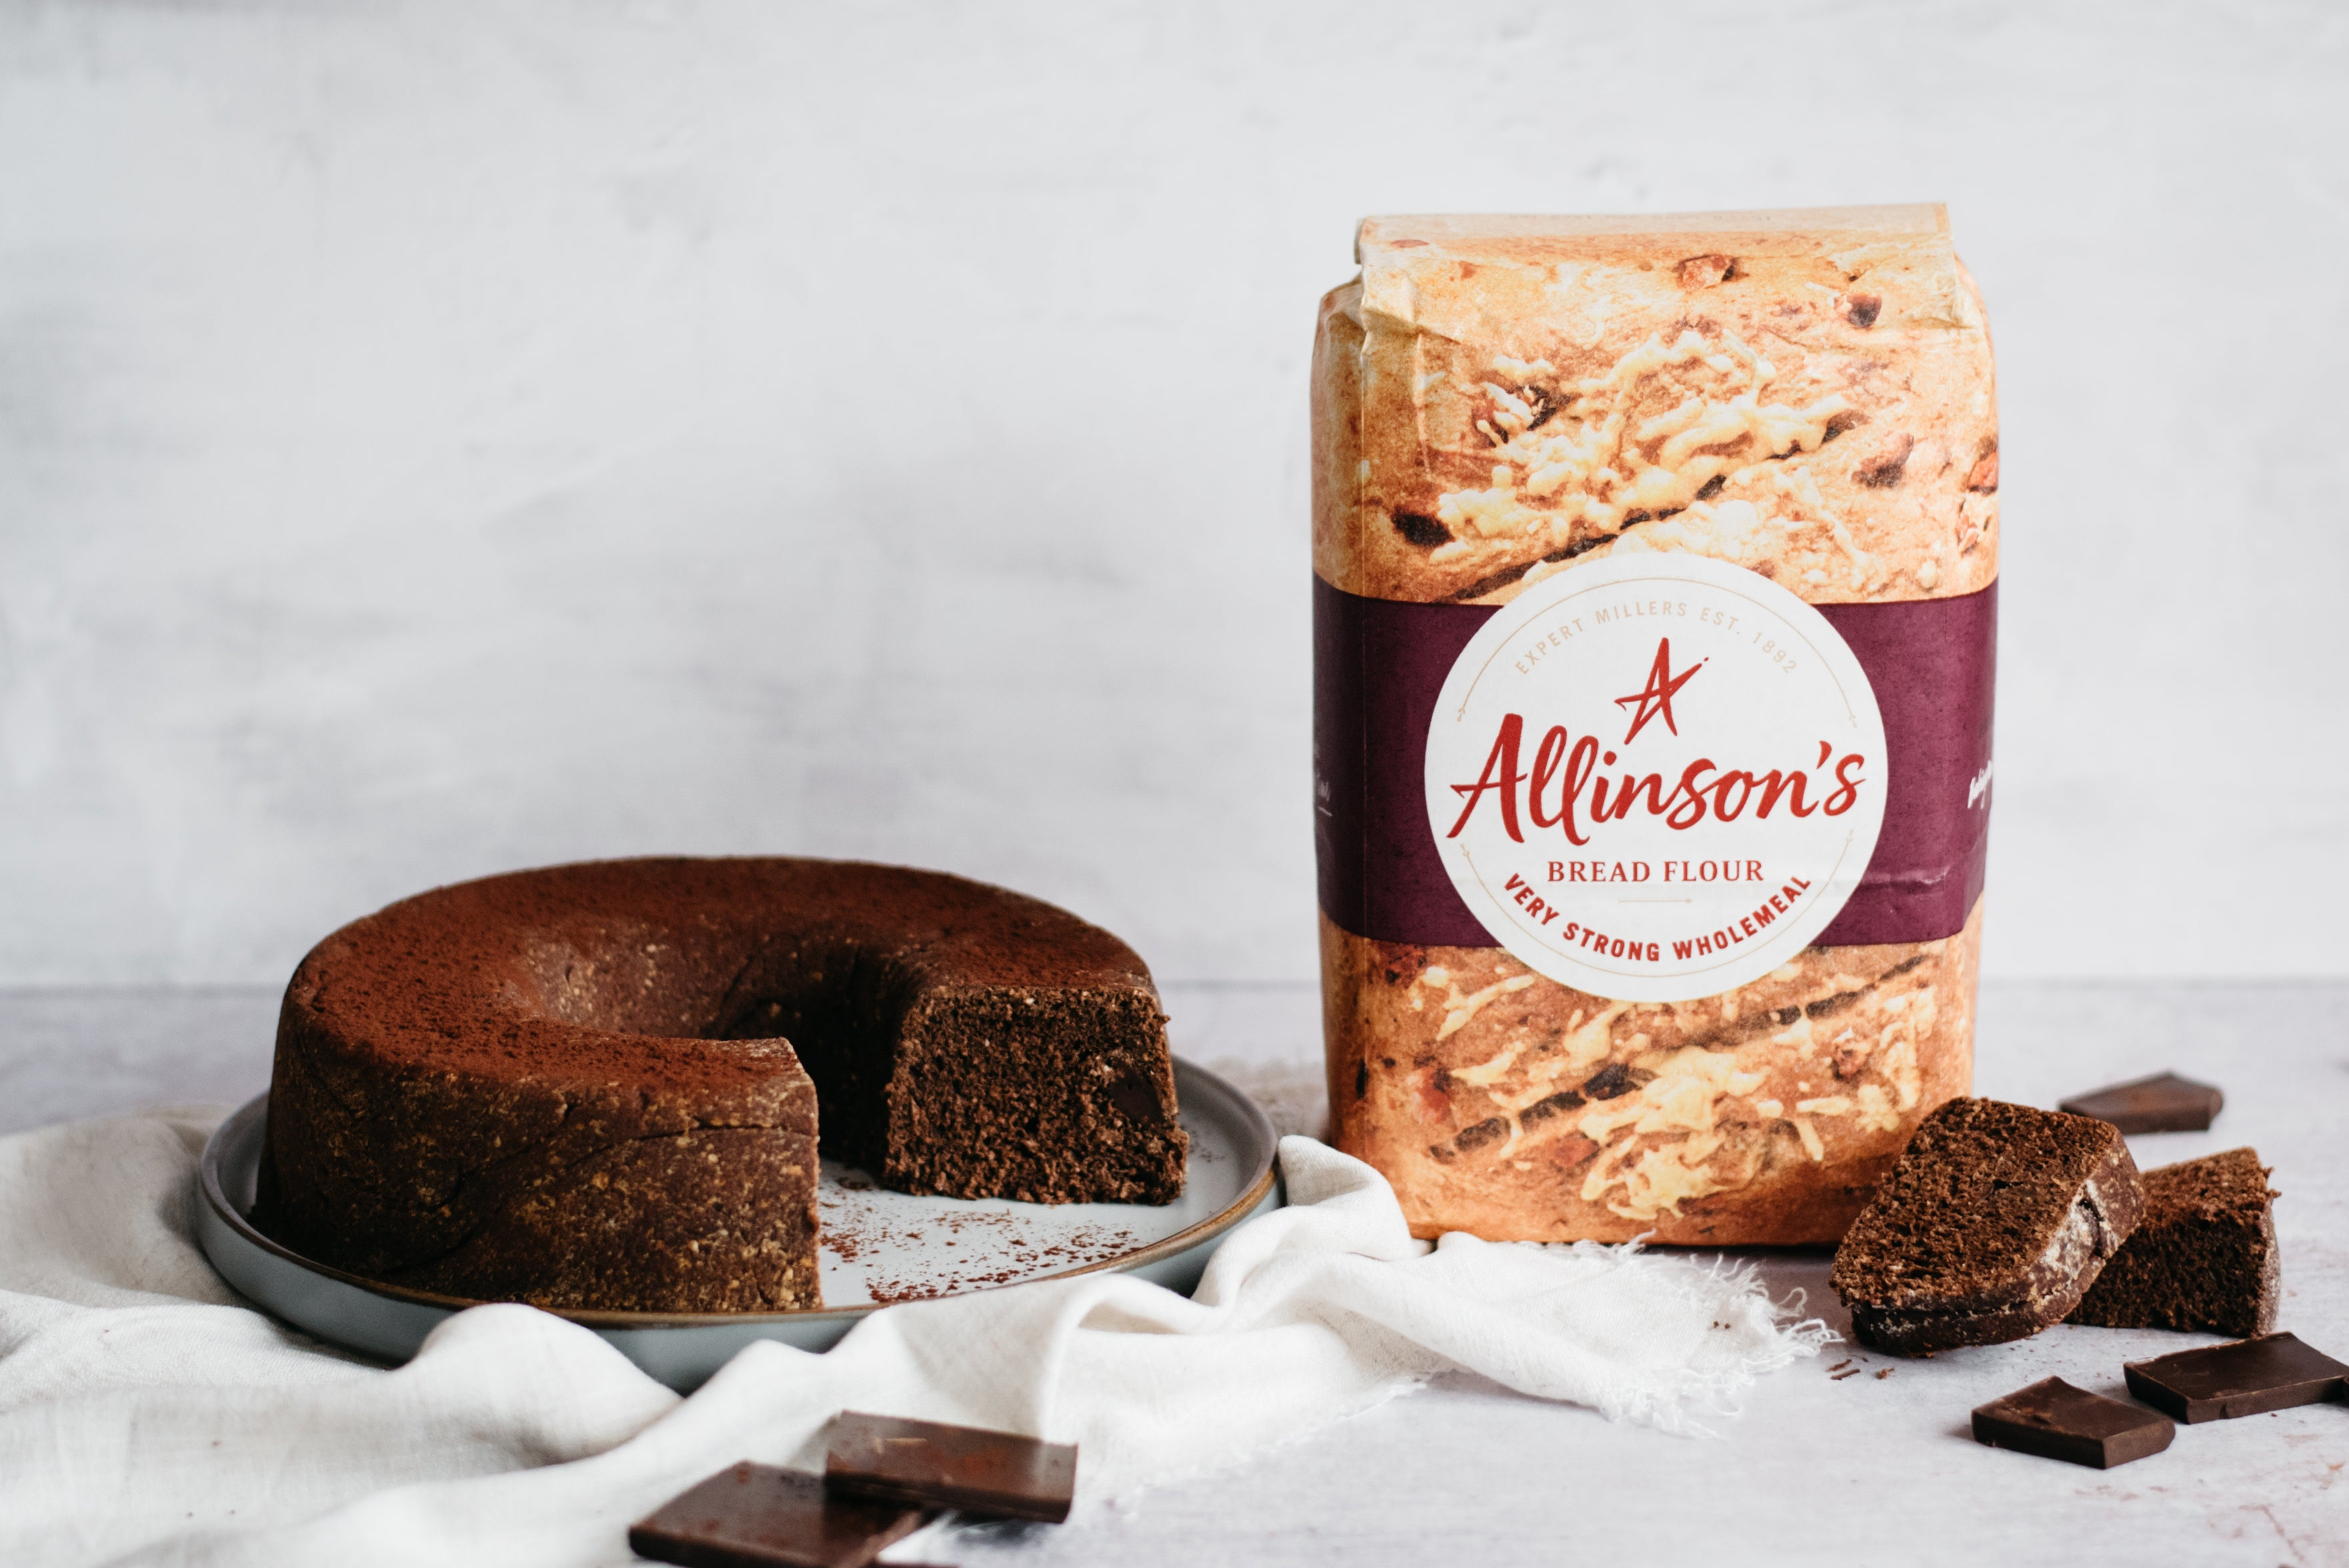 Chocolate Bread next to a bad of Allinson's Very Strong Wholemeal flour next to slices of Chocolate Bread